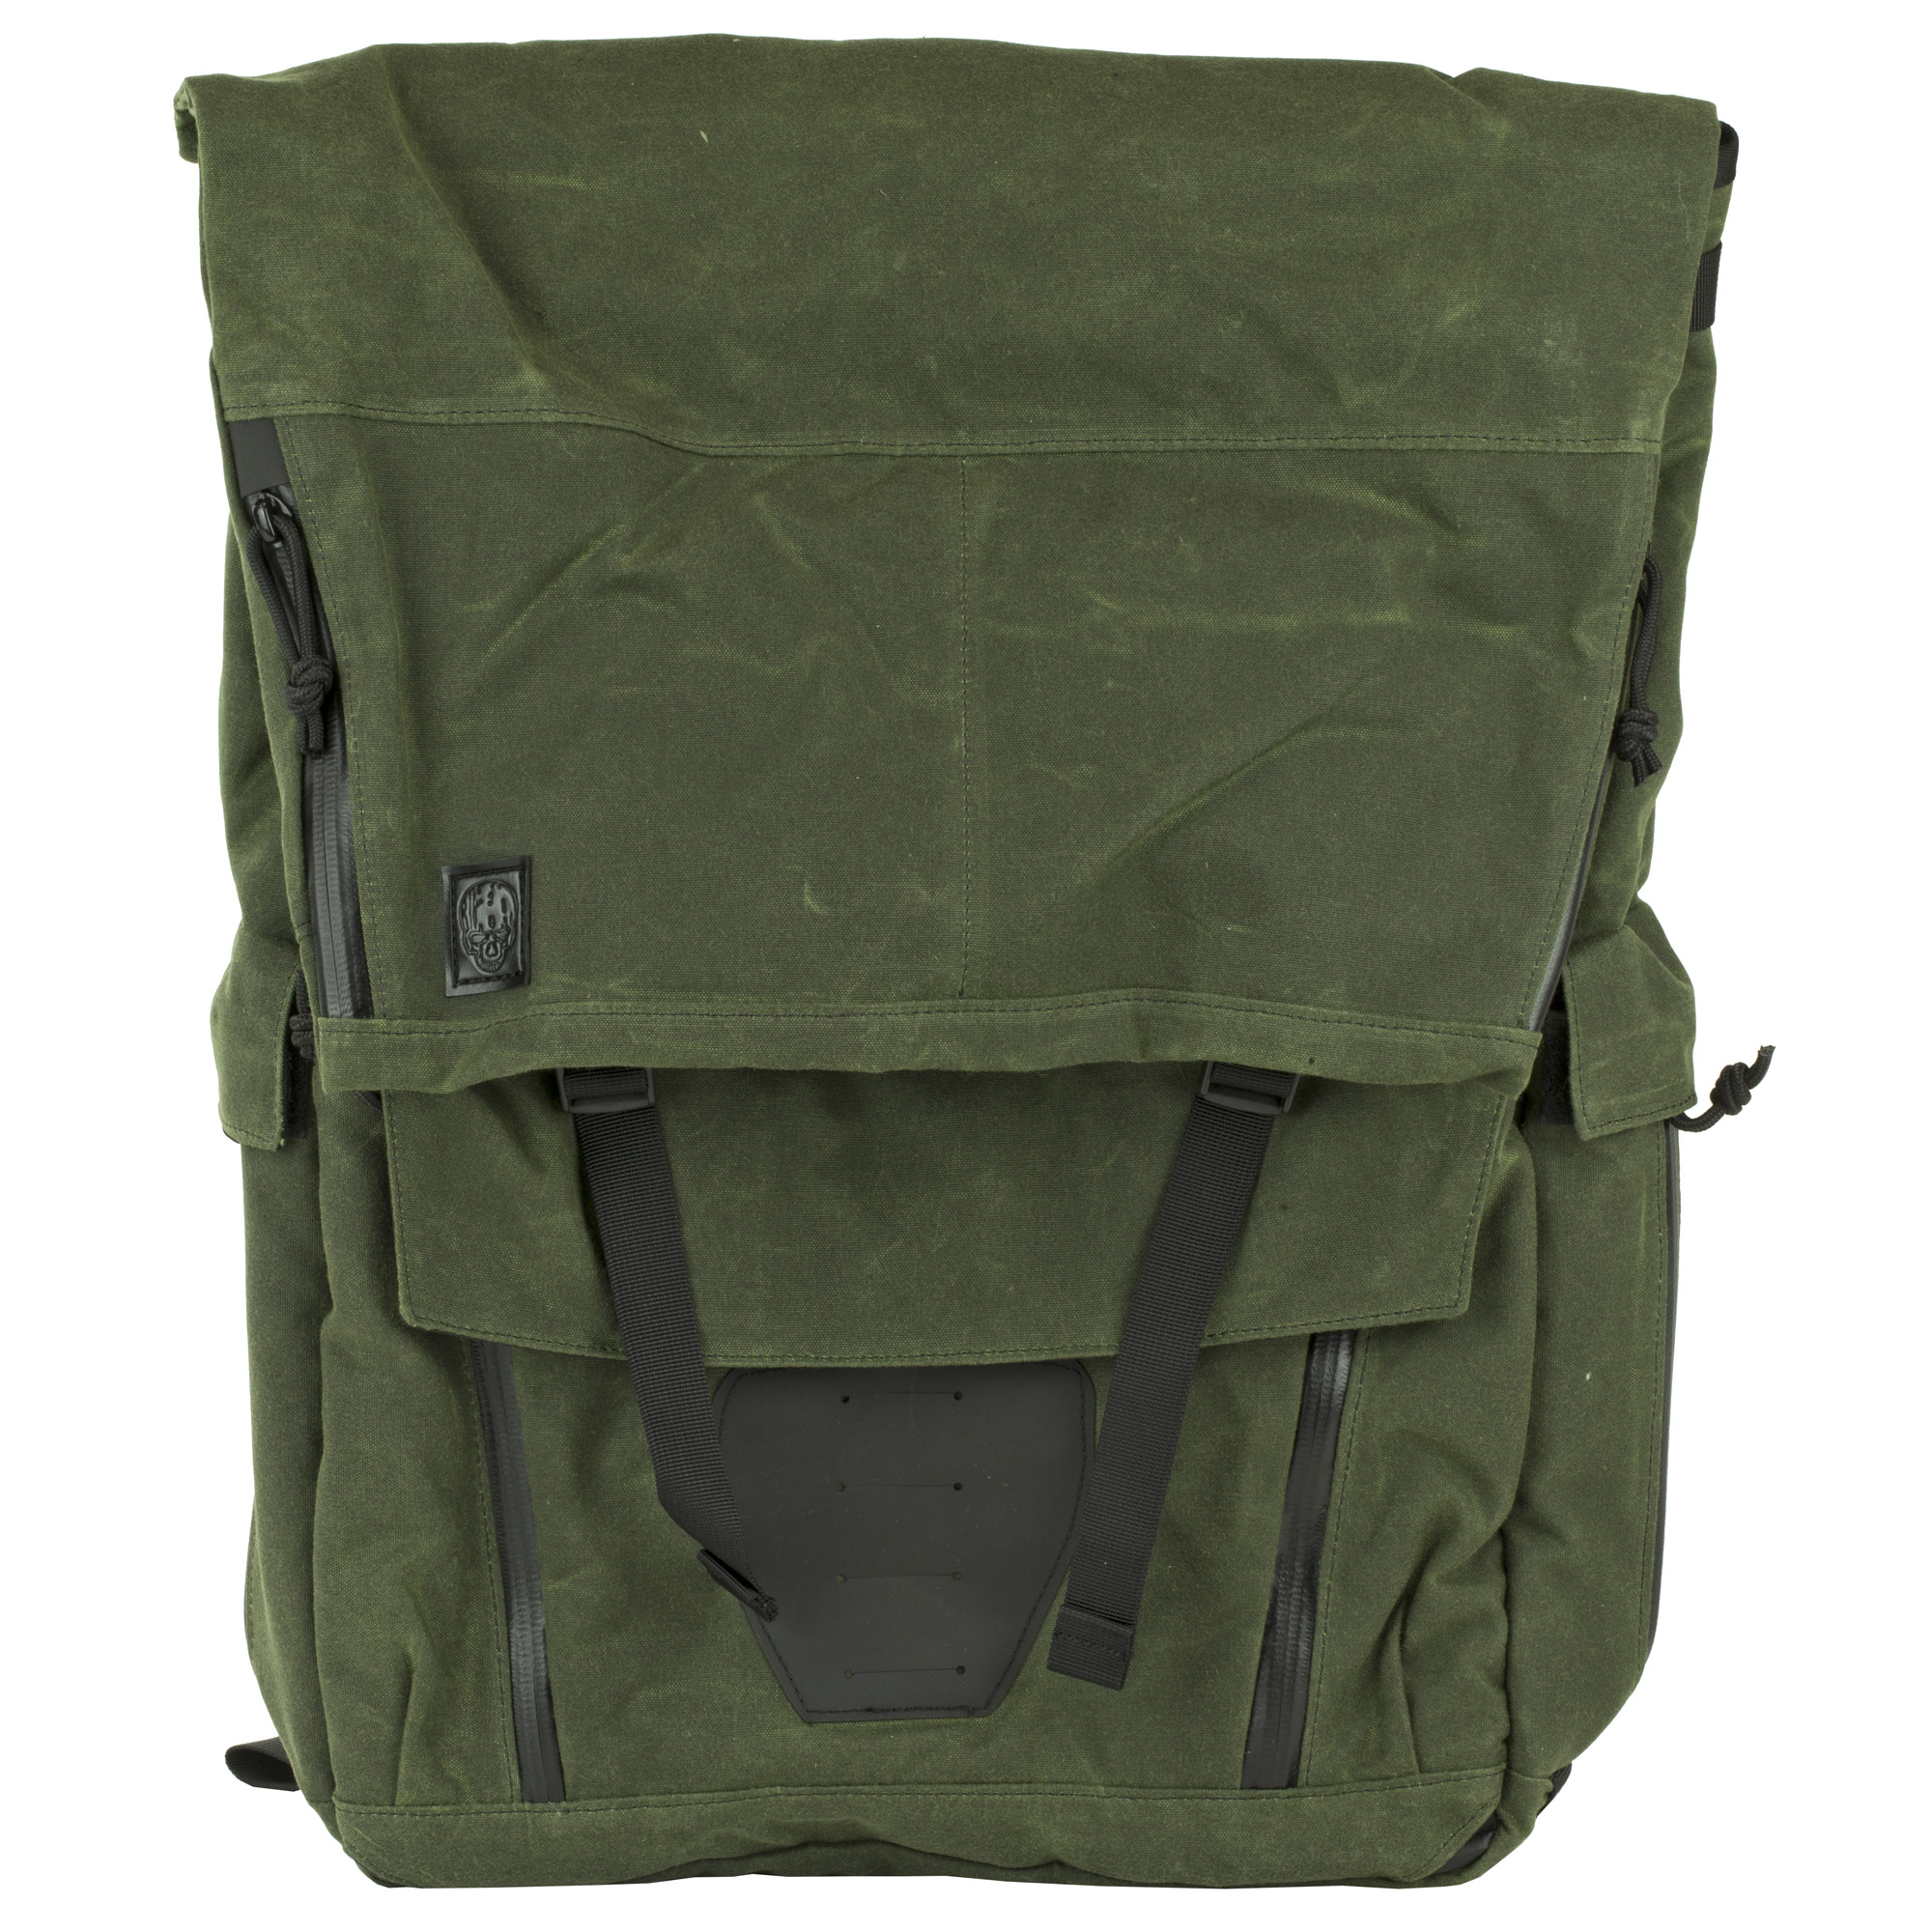 This bag is for the traveler and daily commuter who needs a sturdy bag that does not advertise you're an armed civilian. The front of the pouch has a Hypalon patch with slots cut in it so you can add a light or an extra pouch. Under the flap are two rows of PALS webbing with 7 channels to allow you to expand the capacity of the pack by adding pouches to it.